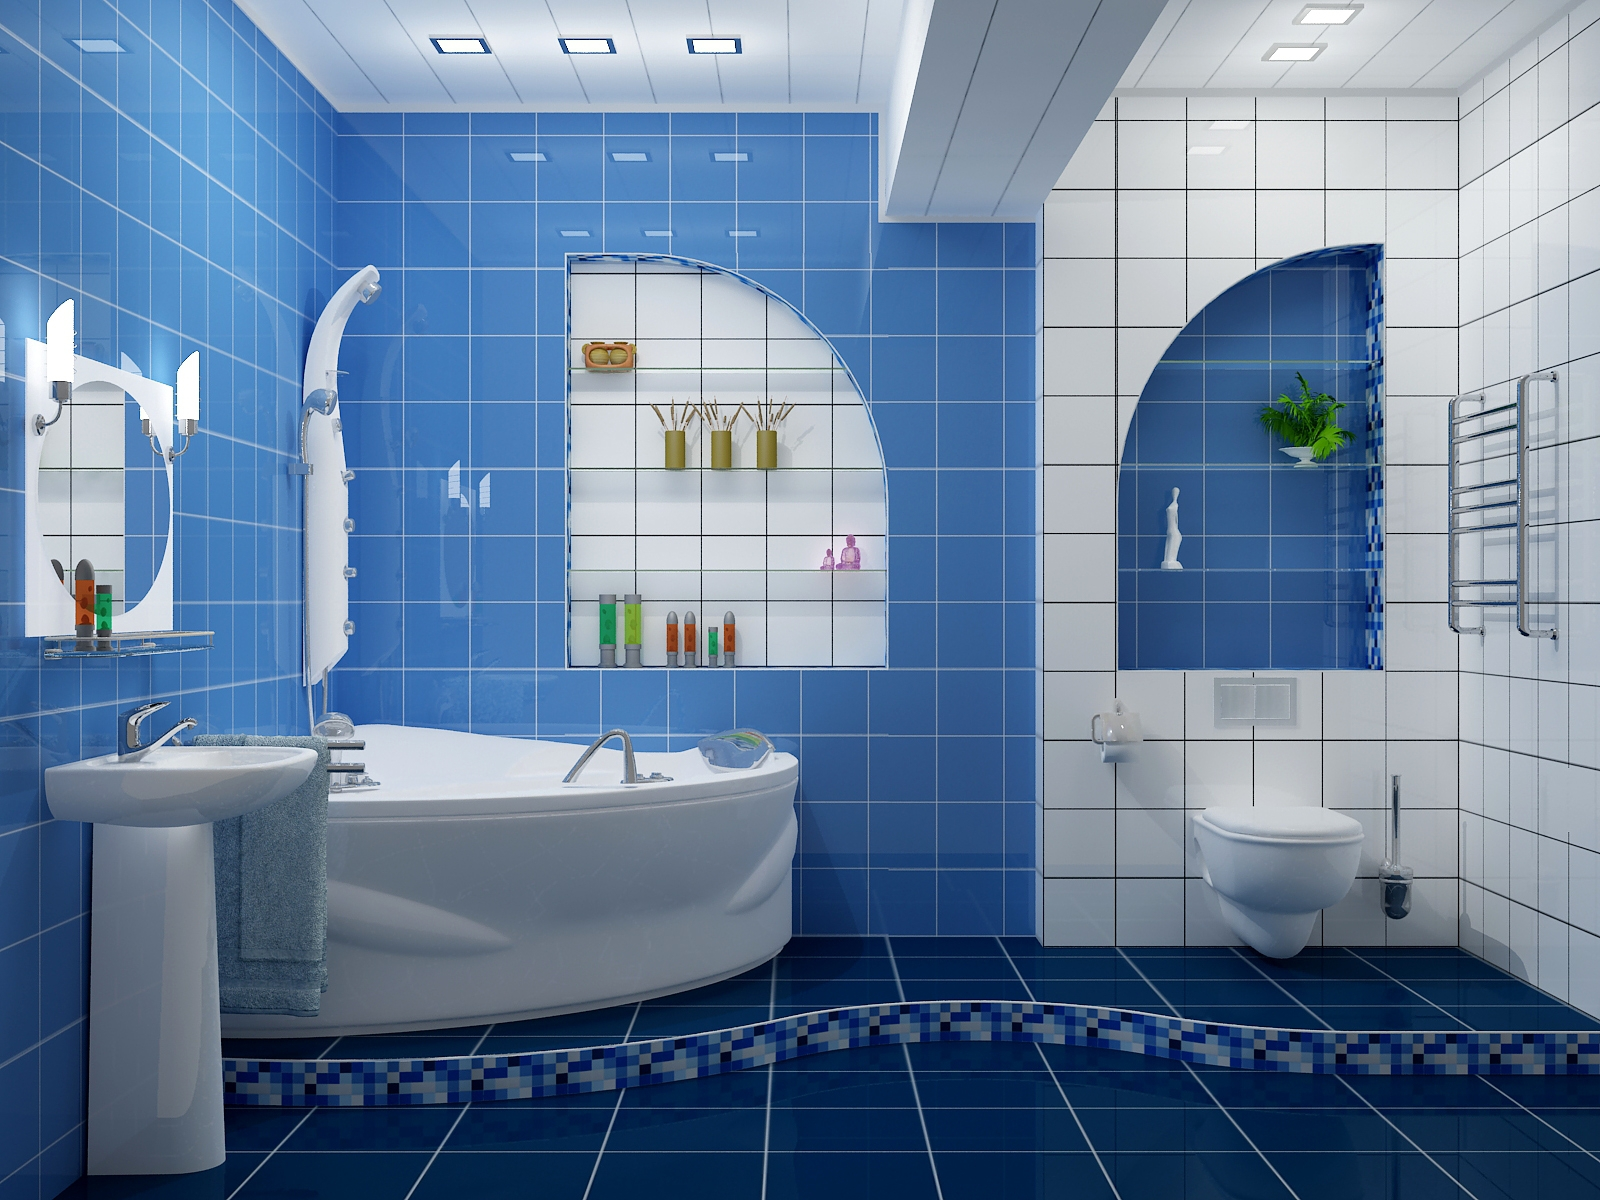 Blue Bathroom Wallpaper Idea For New Home